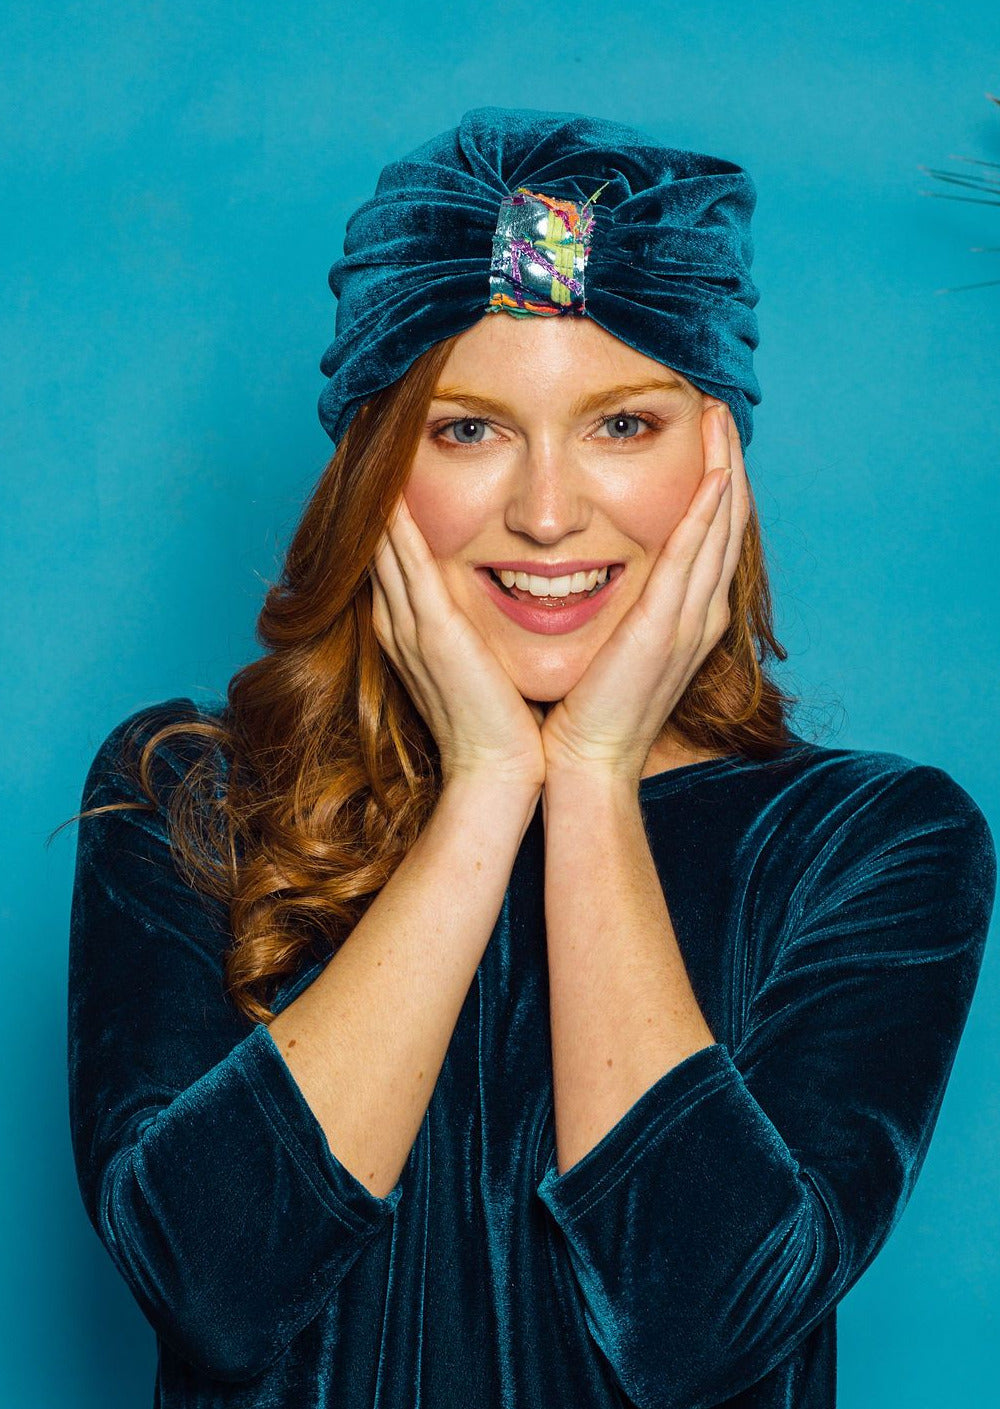 Embellished Velvet Turban in Teal - Accessories - Megan Crook